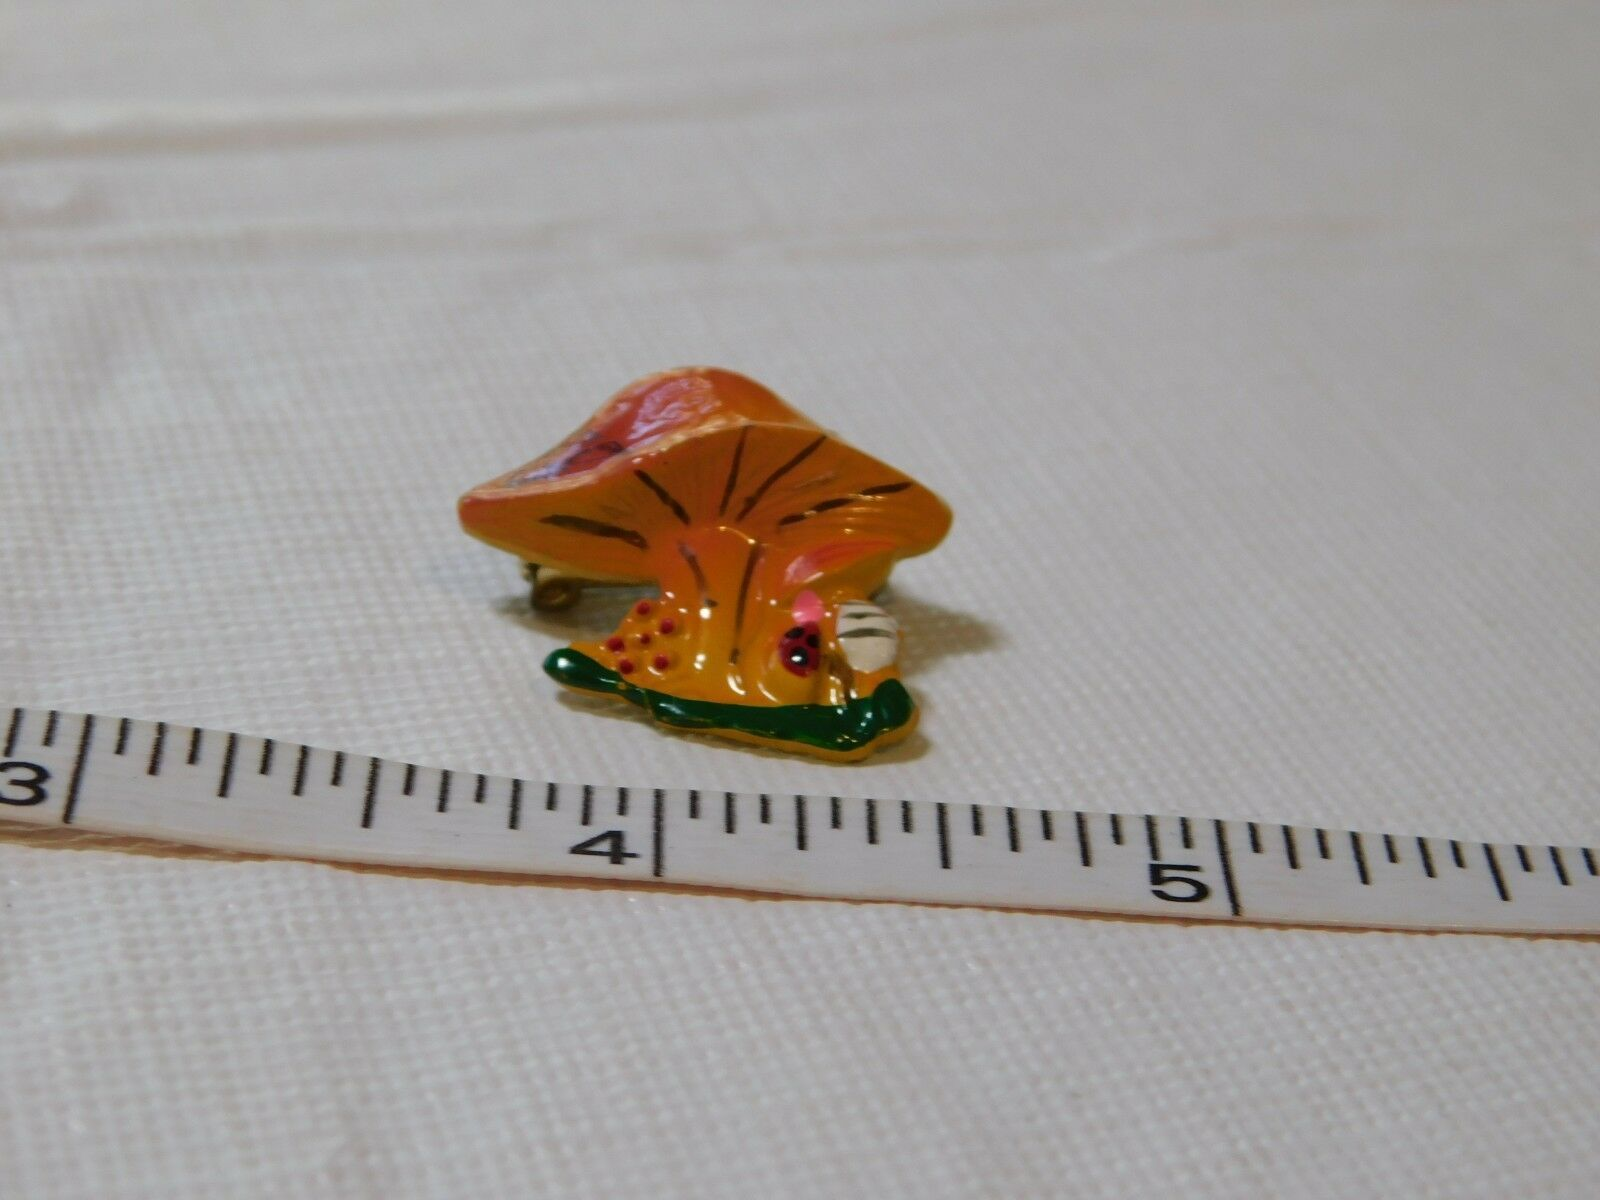 Tiny Handpainted Colorful Psychedelic Mushroom beetle bug Pin Brooch vintage